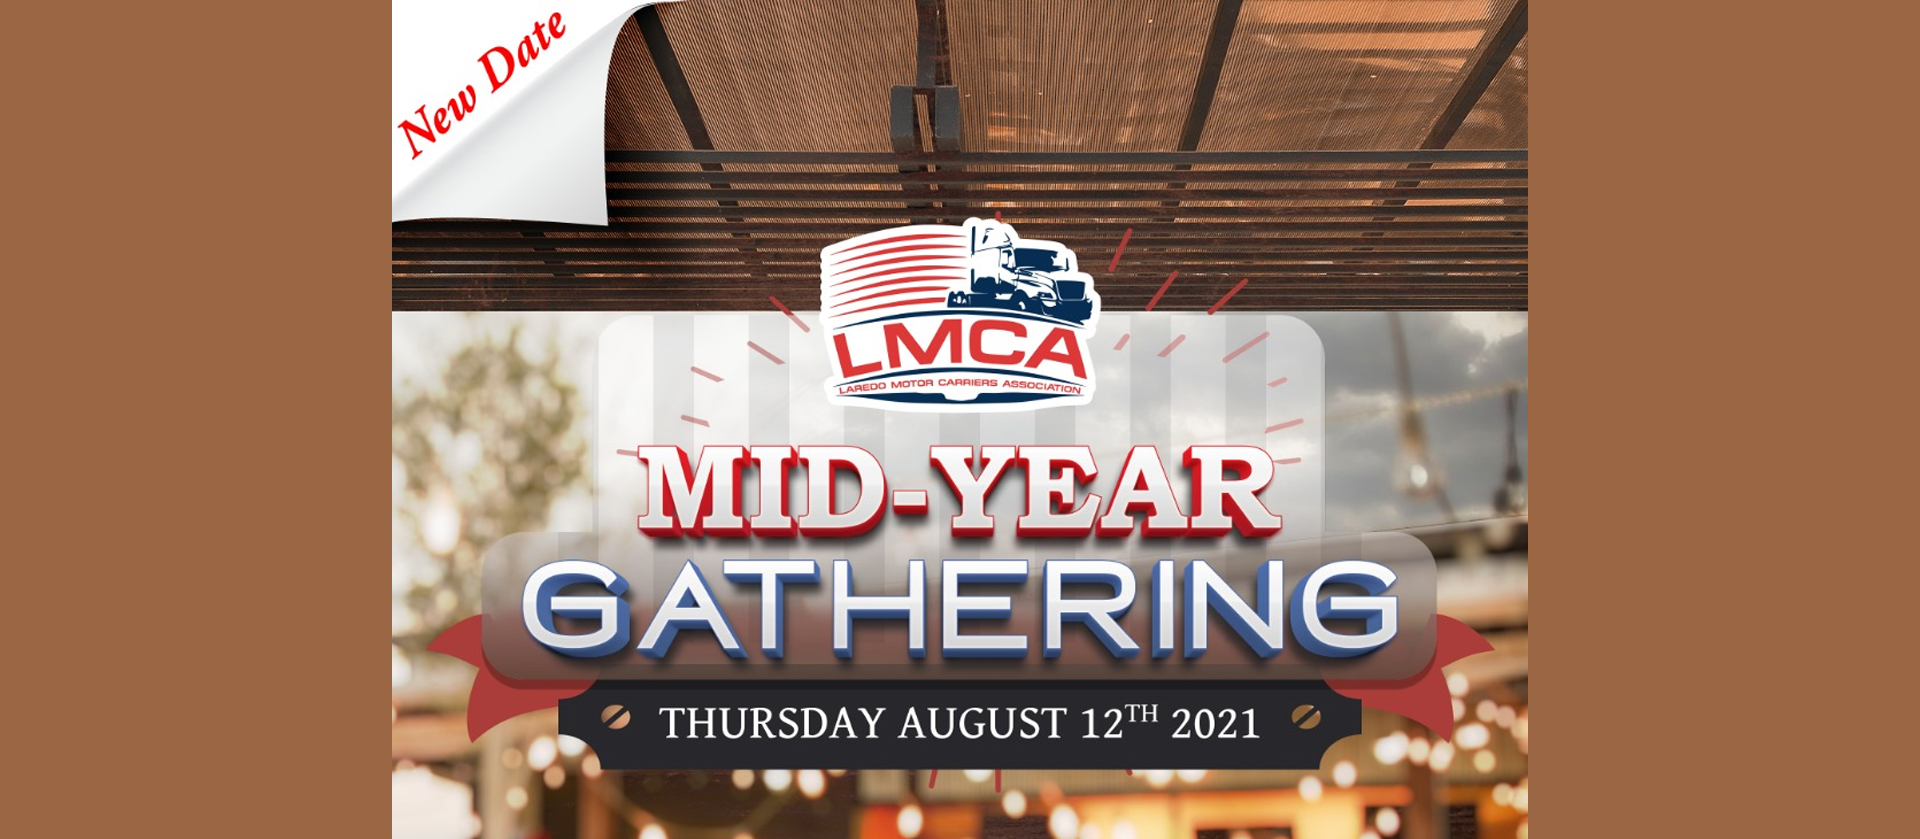 New Date for LMCA's Mid Year Gathering!